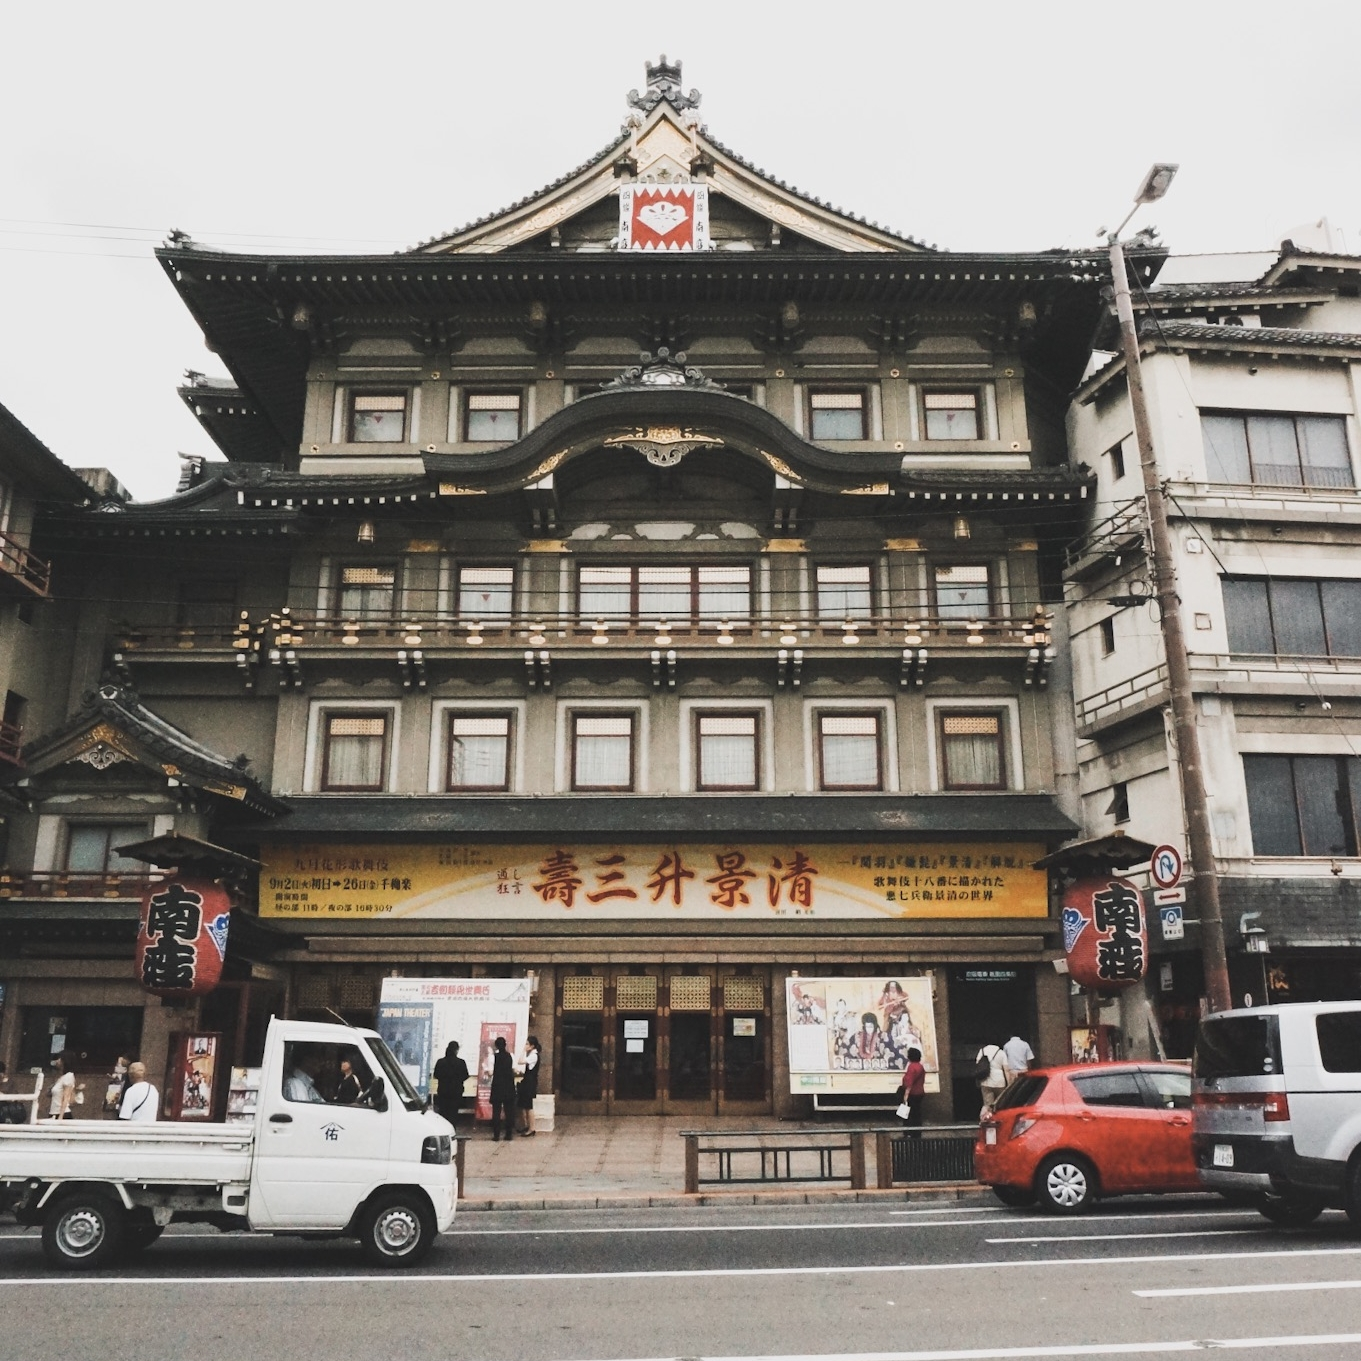 Minami-za (D1) - Kyoto is the birthplace of Kabuki, a type of Japanese theather, and Minami-za is the biggest, bestest Kabuki theater in Kyoto